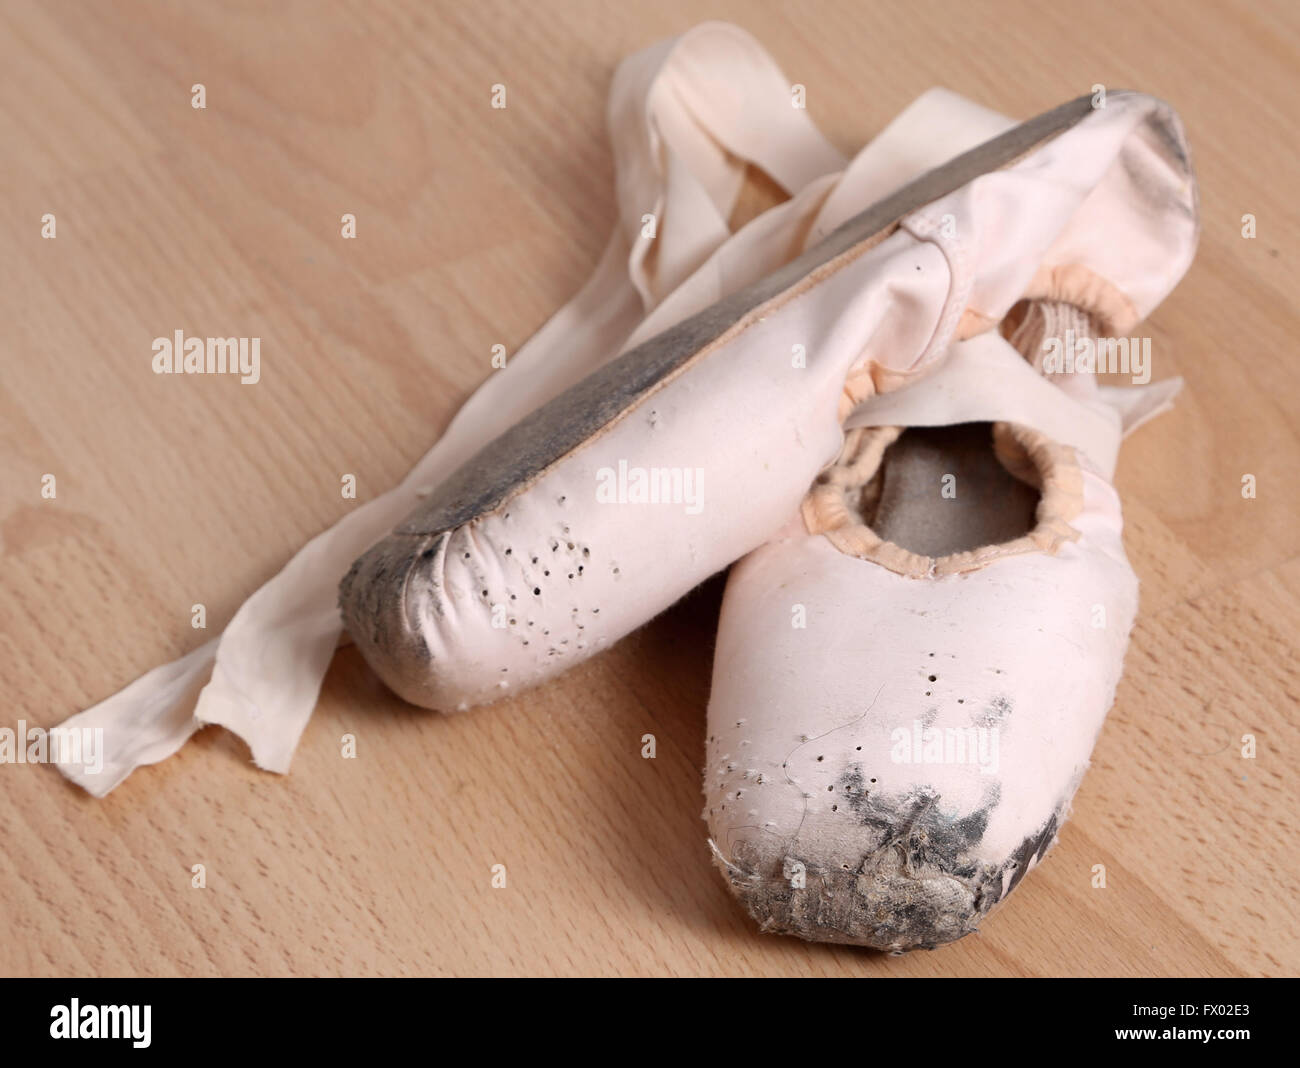 261281f01 Dirty Ballet Shoes Stock Photos   Dirty Ballet Shoes Stock Images ...